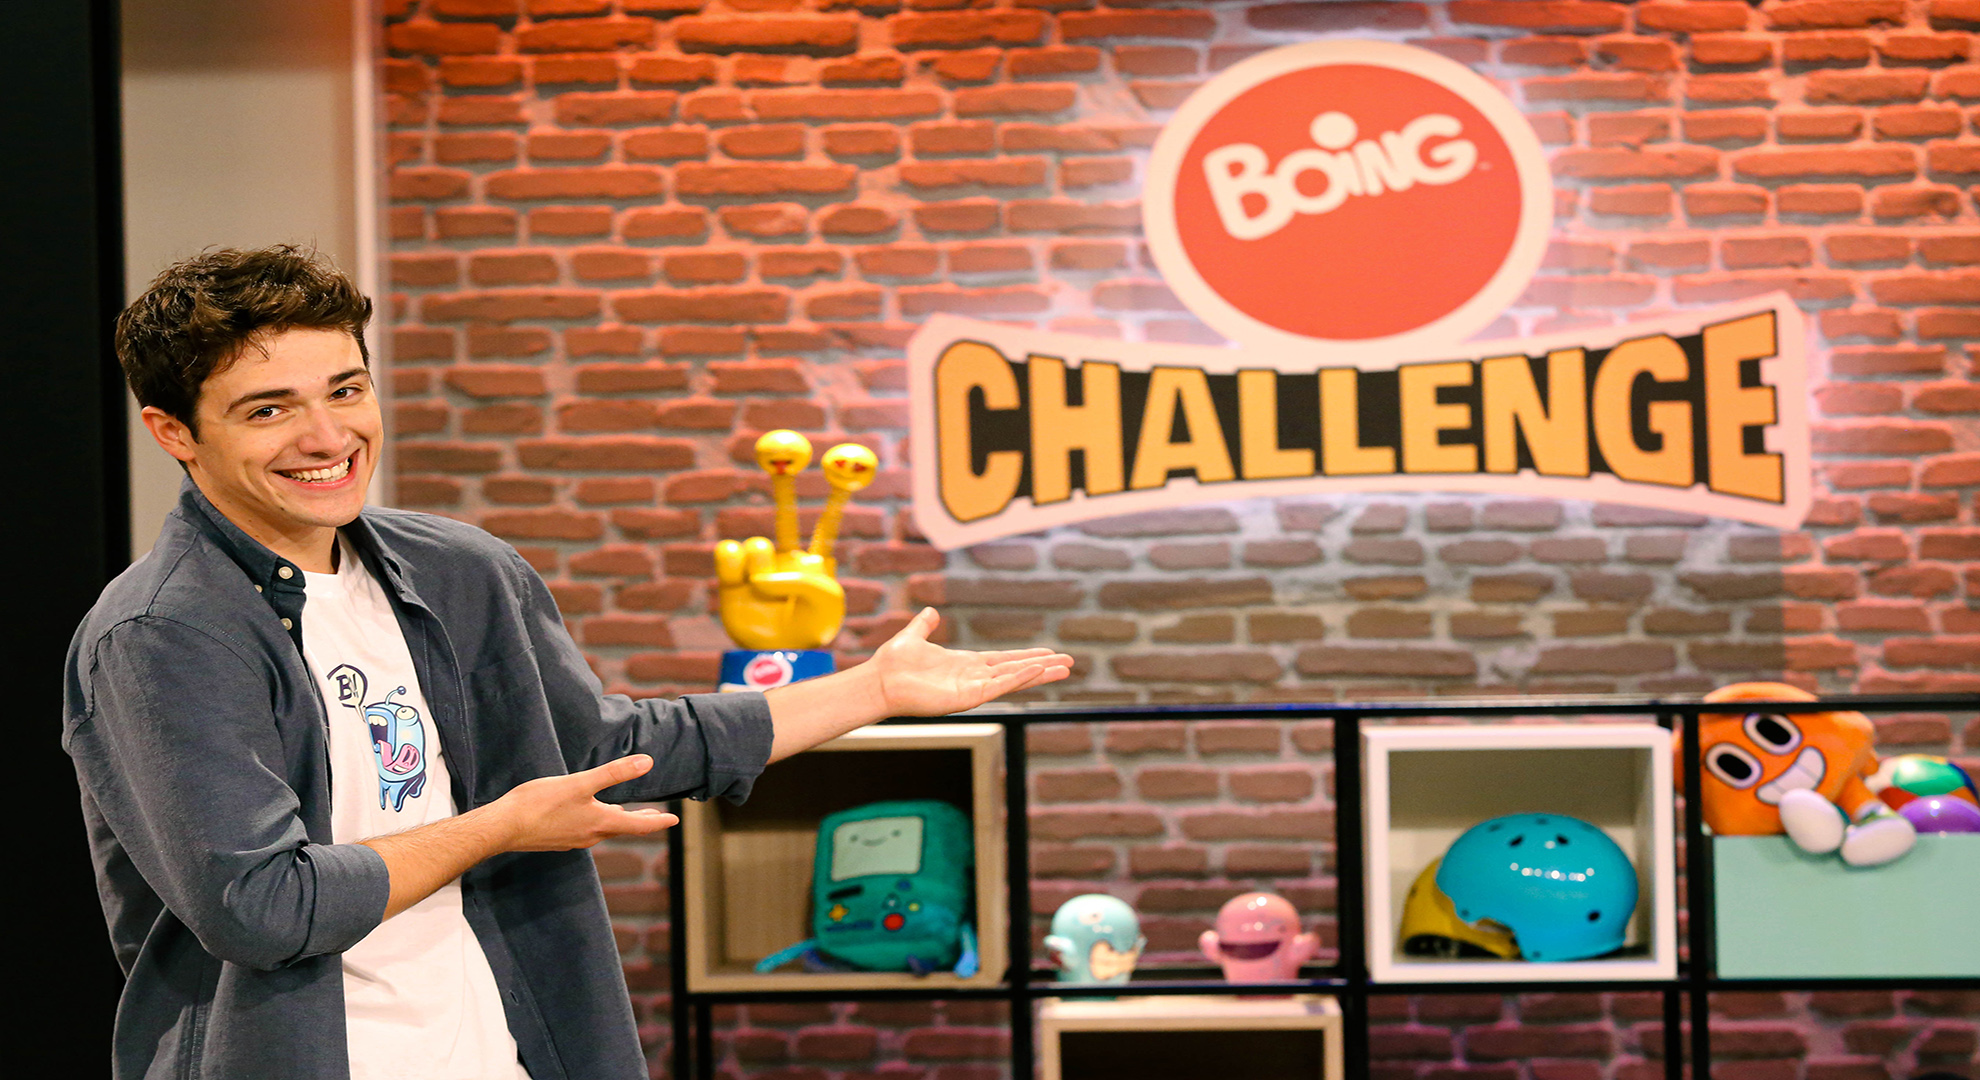 BOING CHALLENGE 2° STAGIONE 1 Serial Gamer